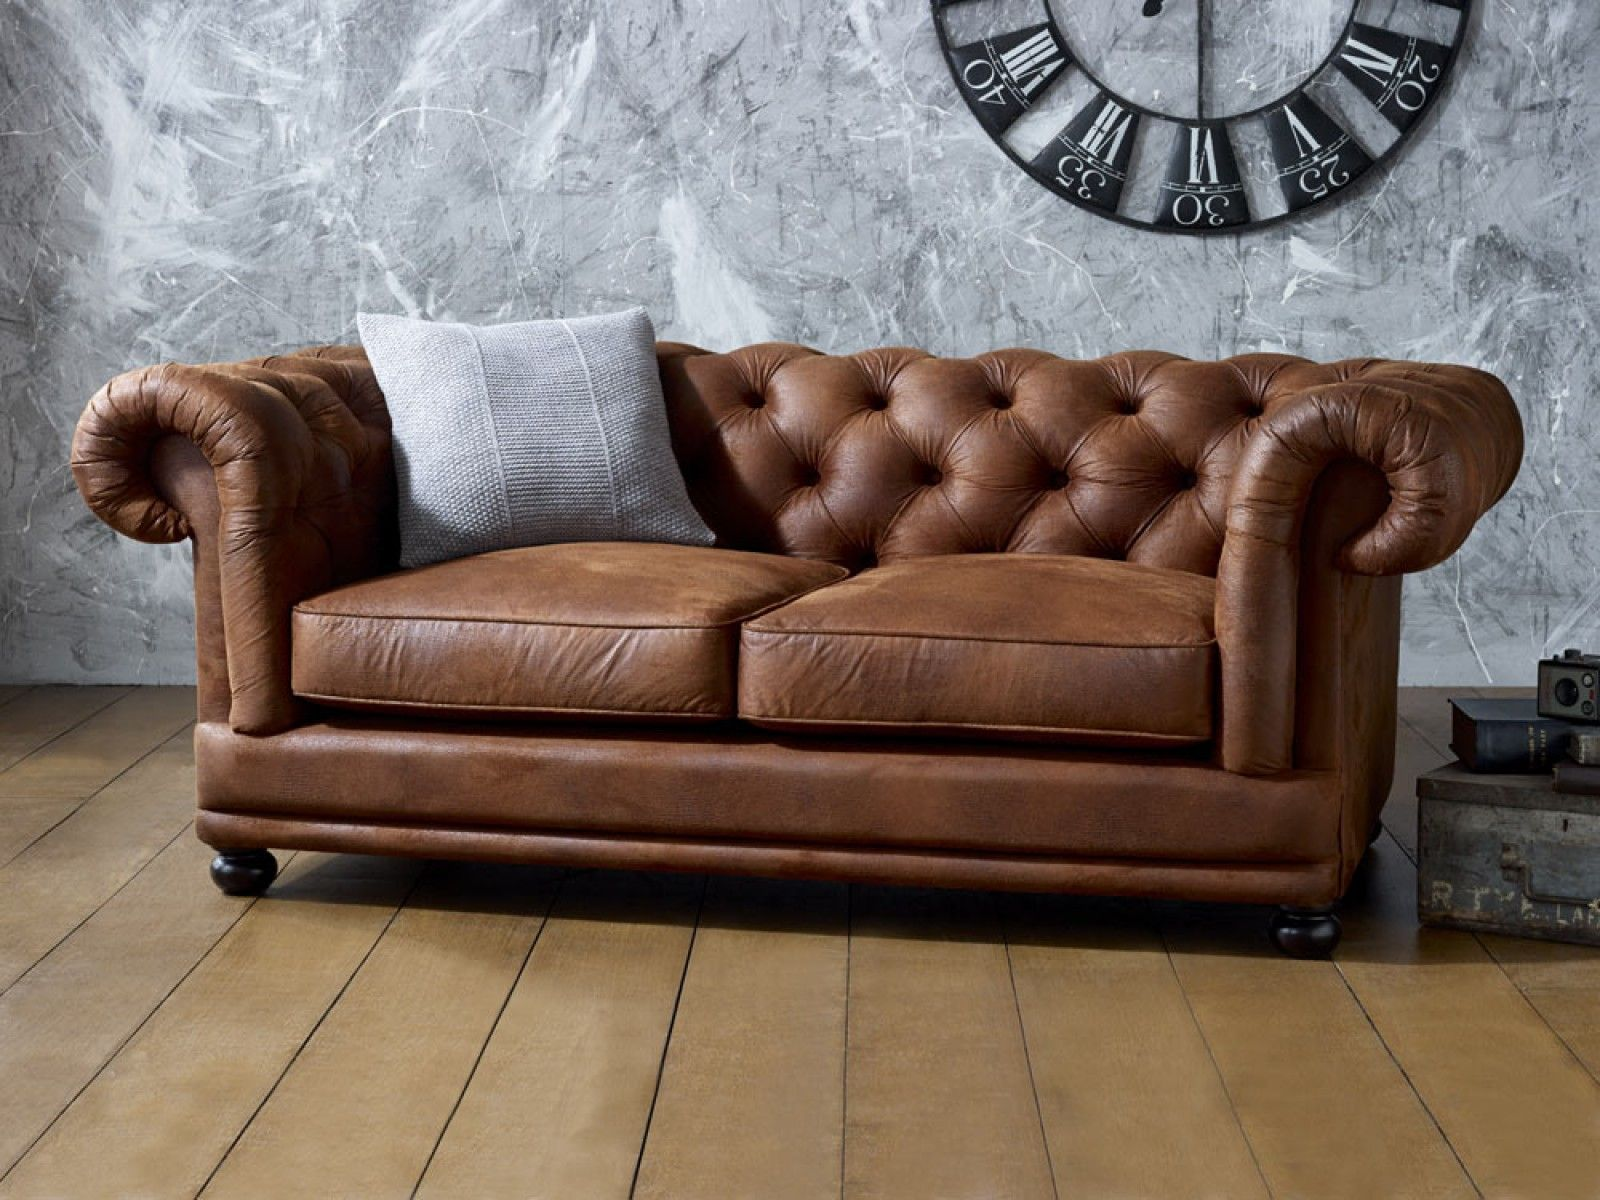 Fake leather couch with images faux leather sofa